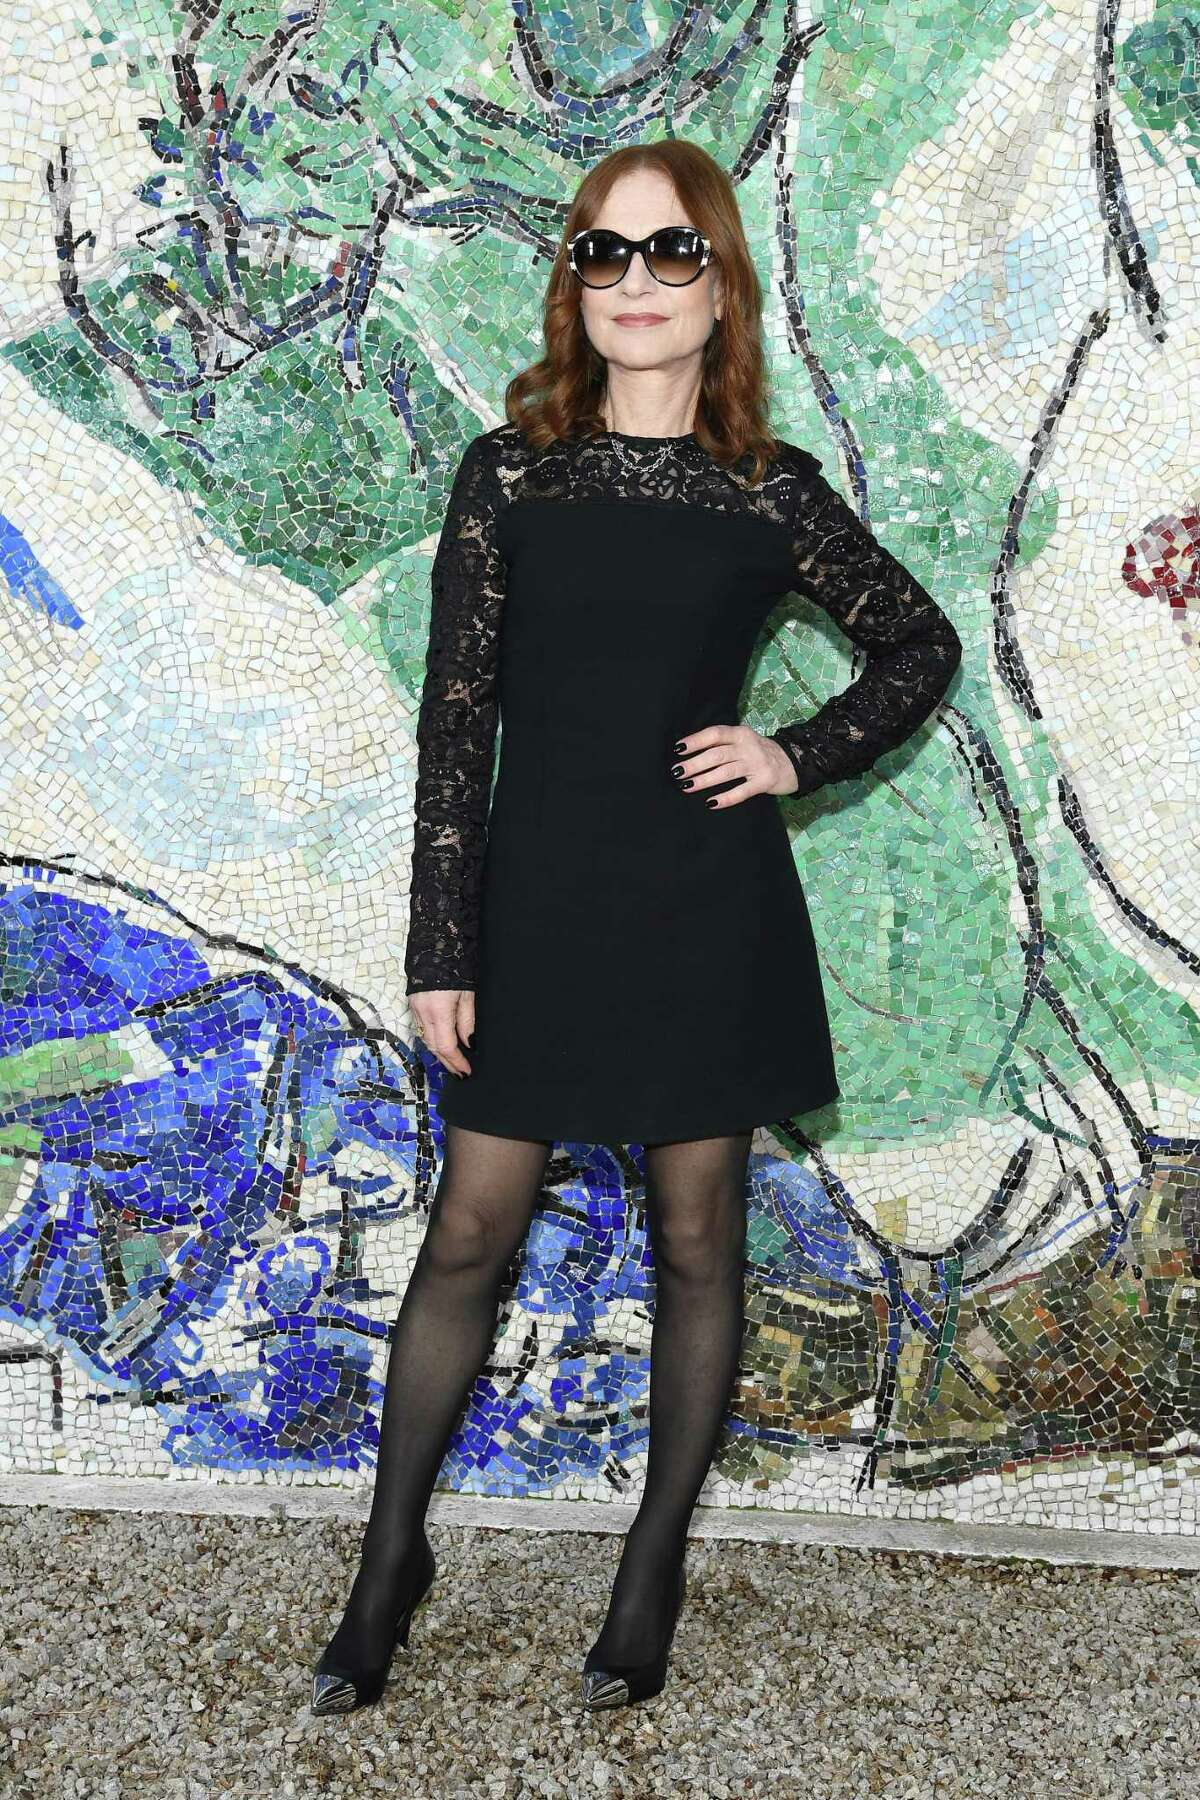 SAINT-PAUL-DE-VENCE, FRANCE - MAY 28: Isabelle Huppert attends Louis Vuitton 2019 Cruise Collection at Fondation Maeght on May 28, 2018 in Saint-Paul-De-Vence, France. (Photo by Pascal Le Segretain/Getty Images for Louis Vuitton)